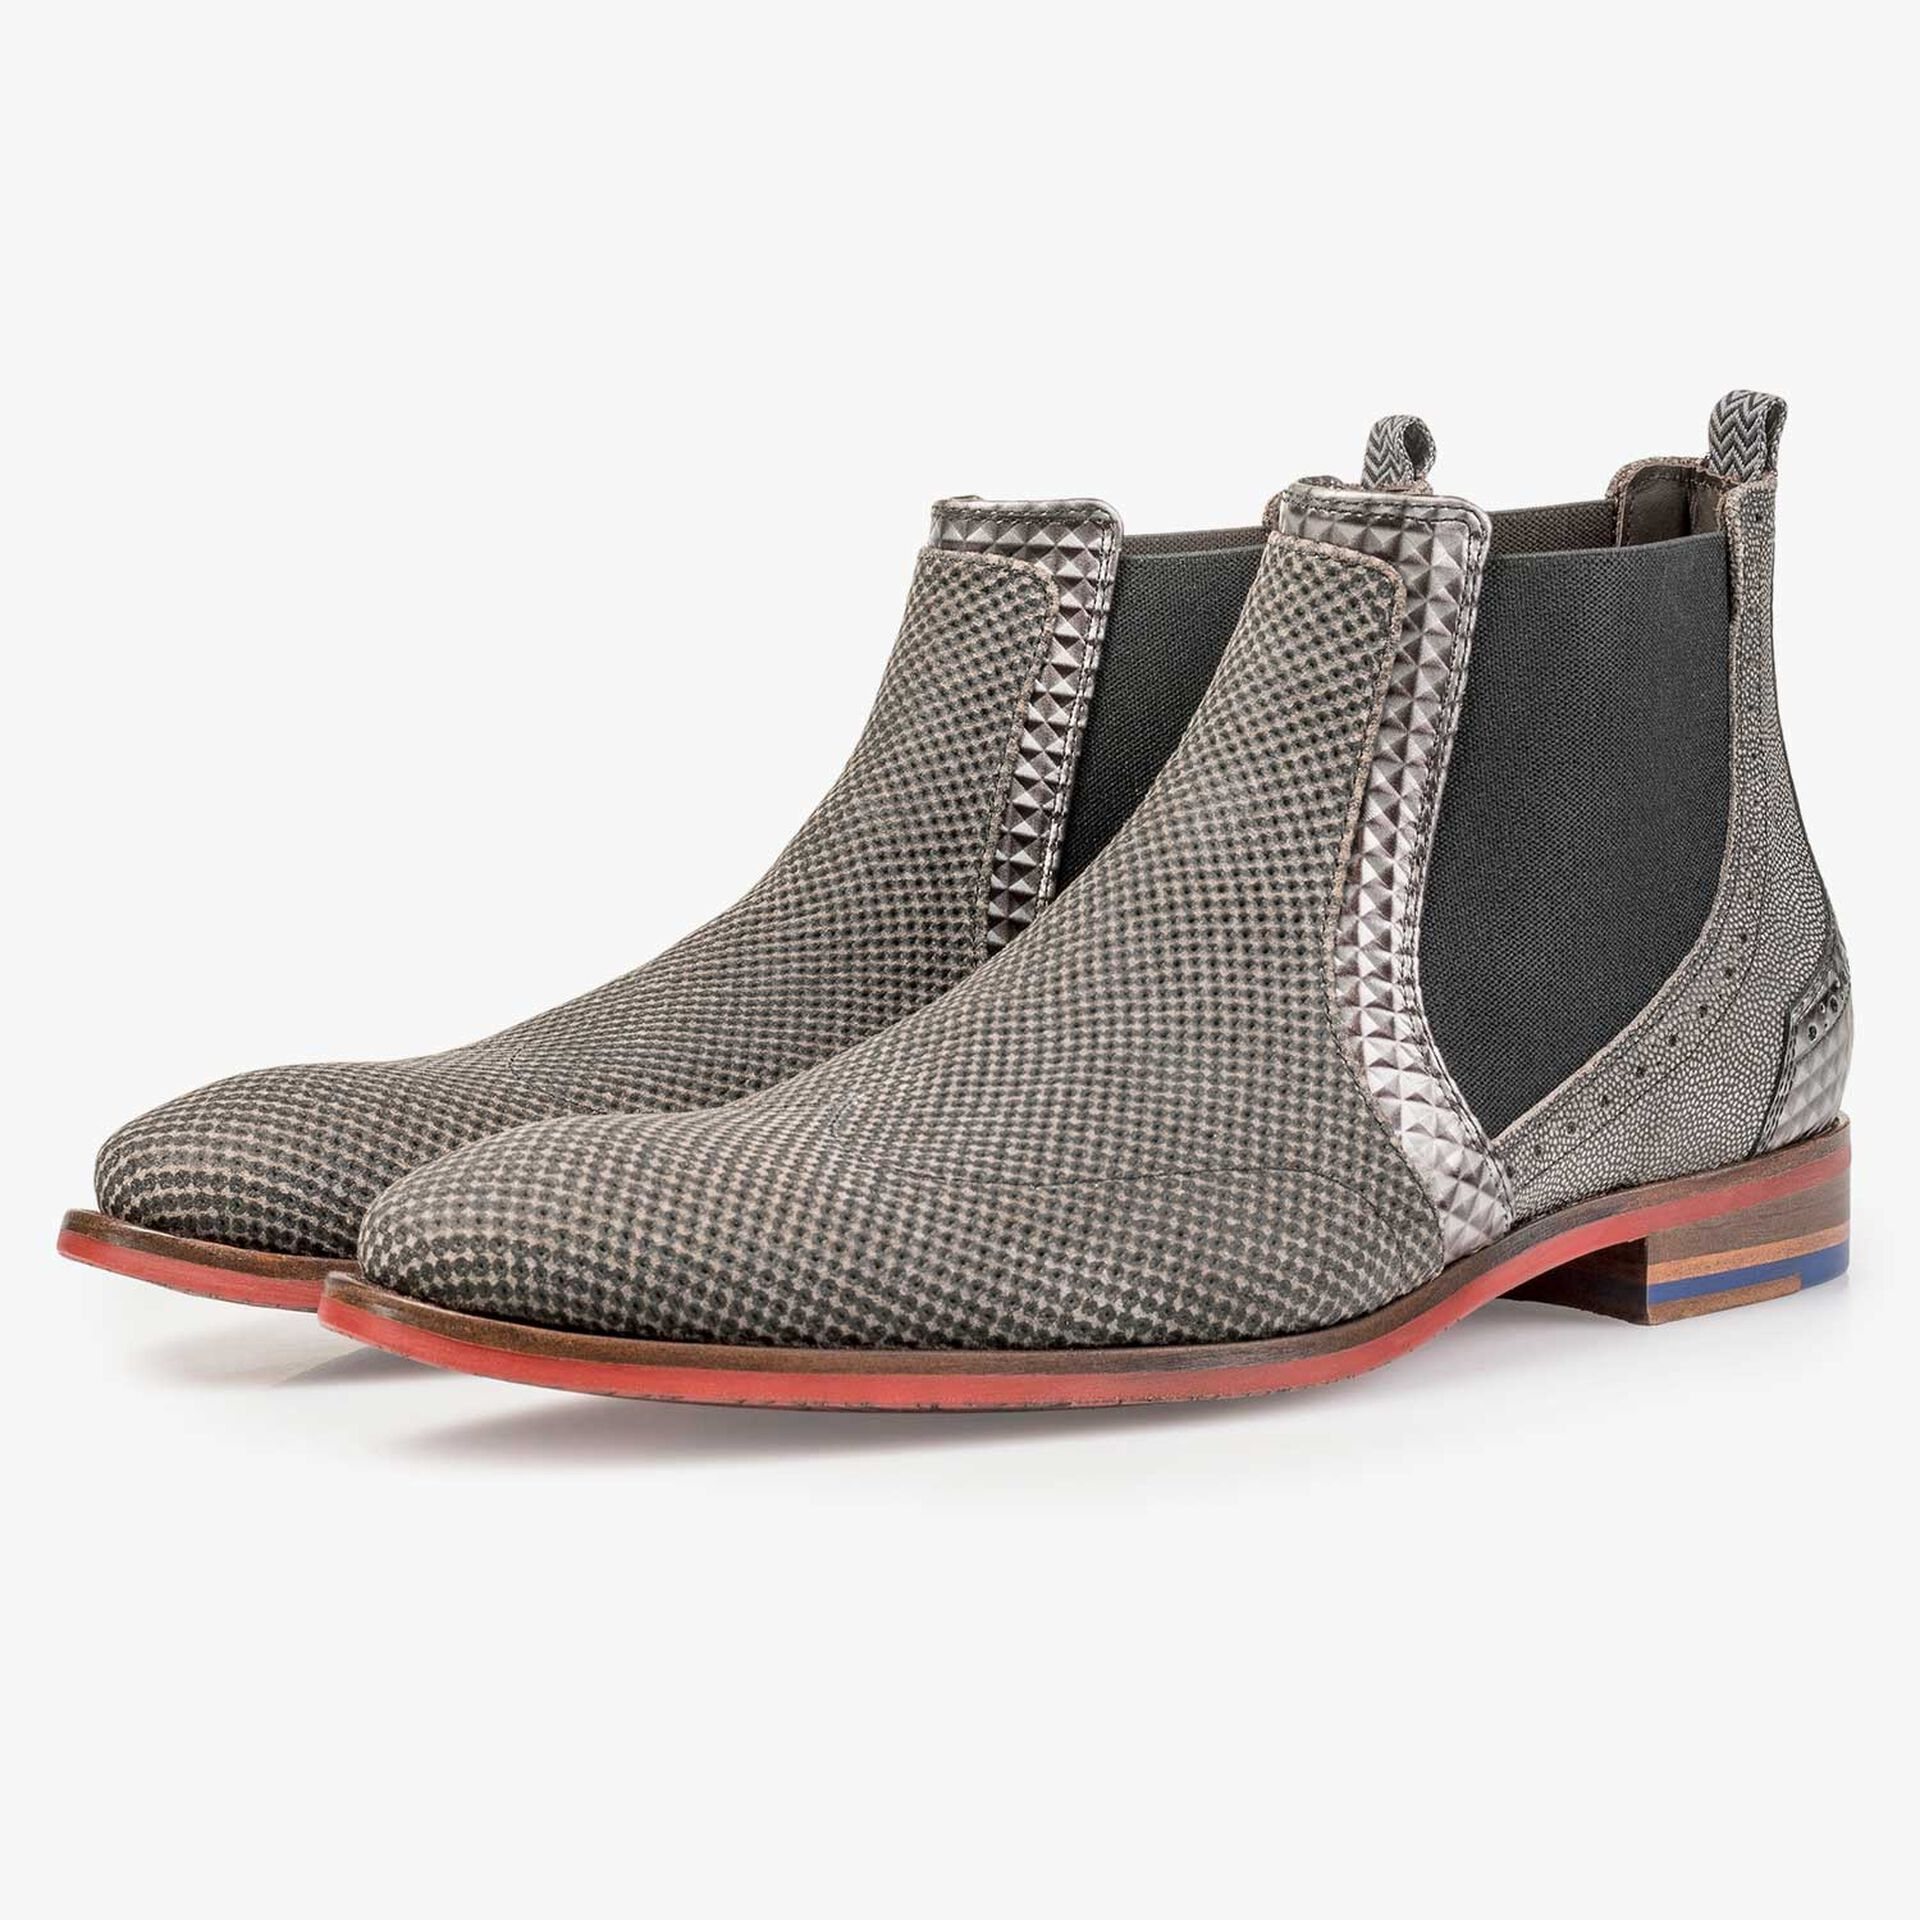 Taupe-coloured suede leather Chelsea boot with a mini print